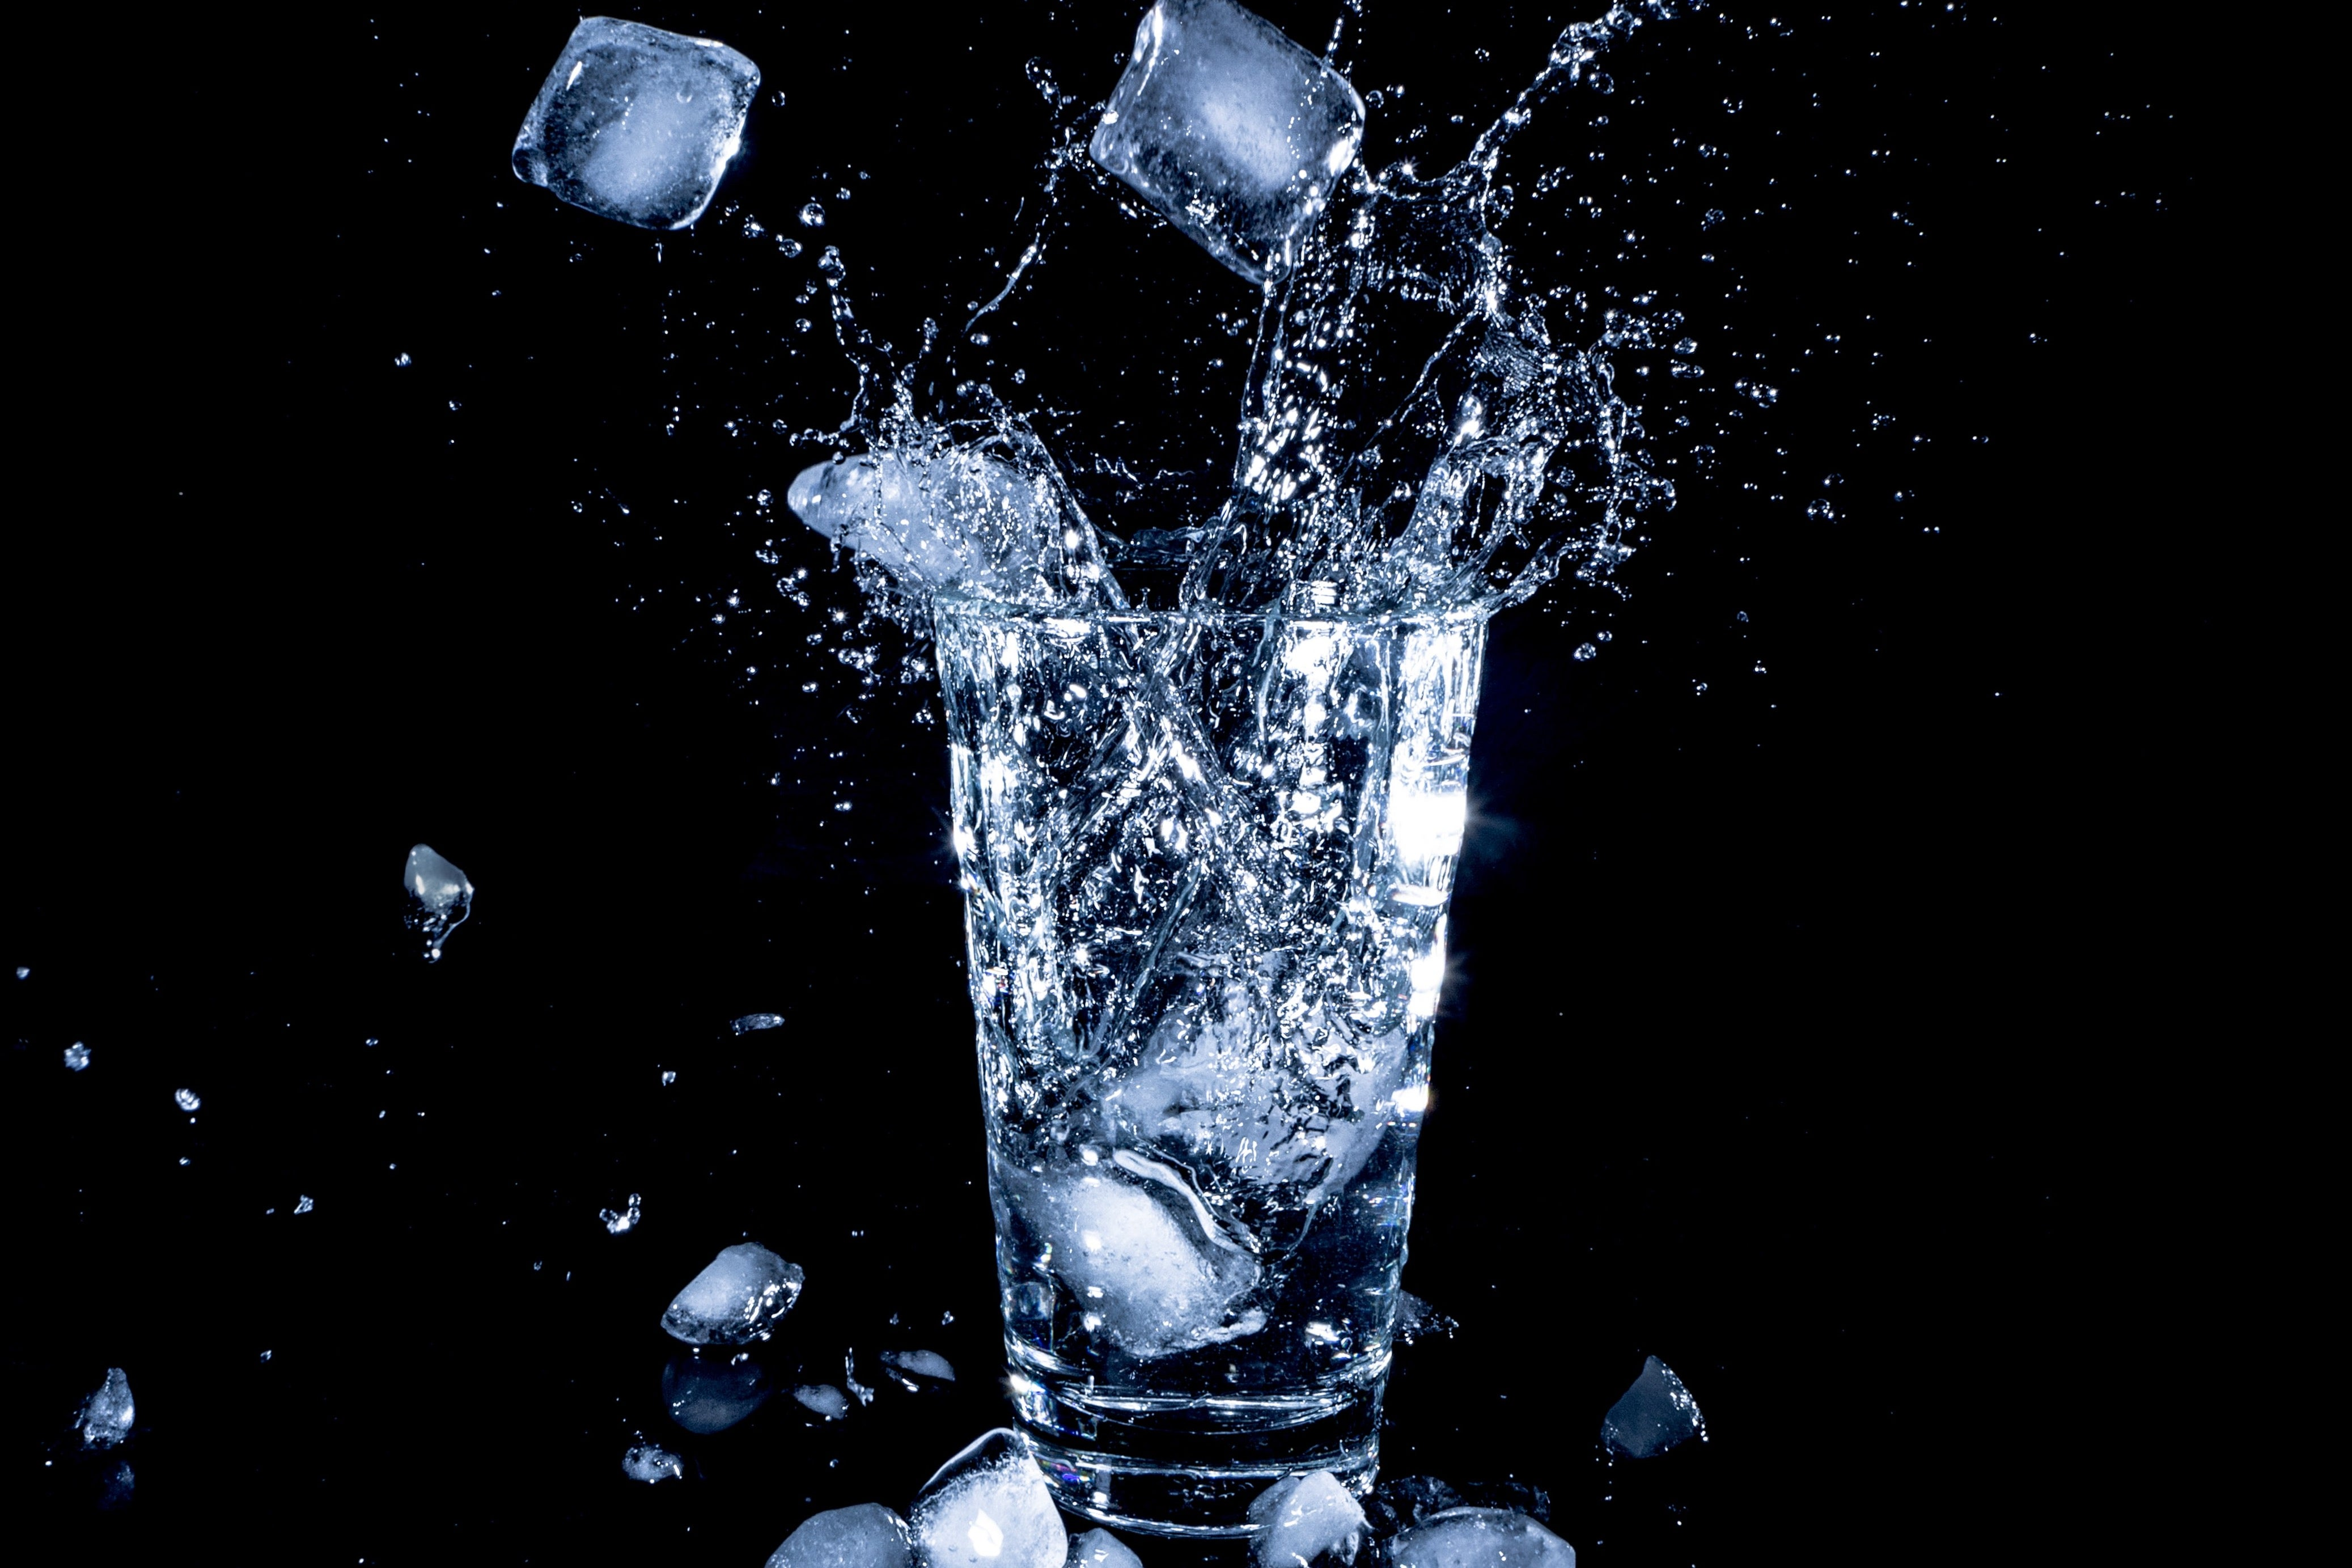 Ice falling into a glass